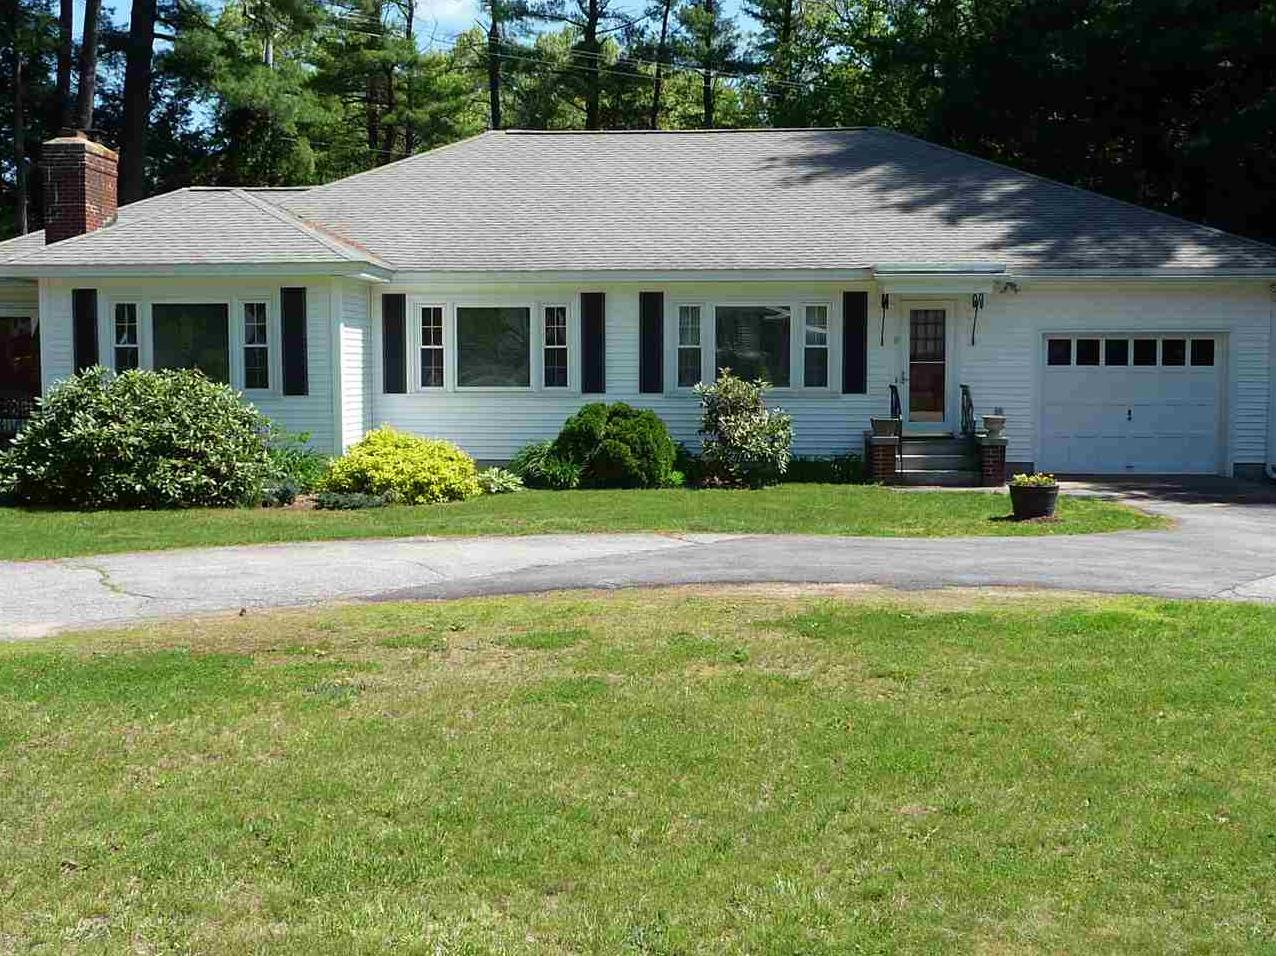 Photo of 495 Mast Road Goffstown, NH 03045